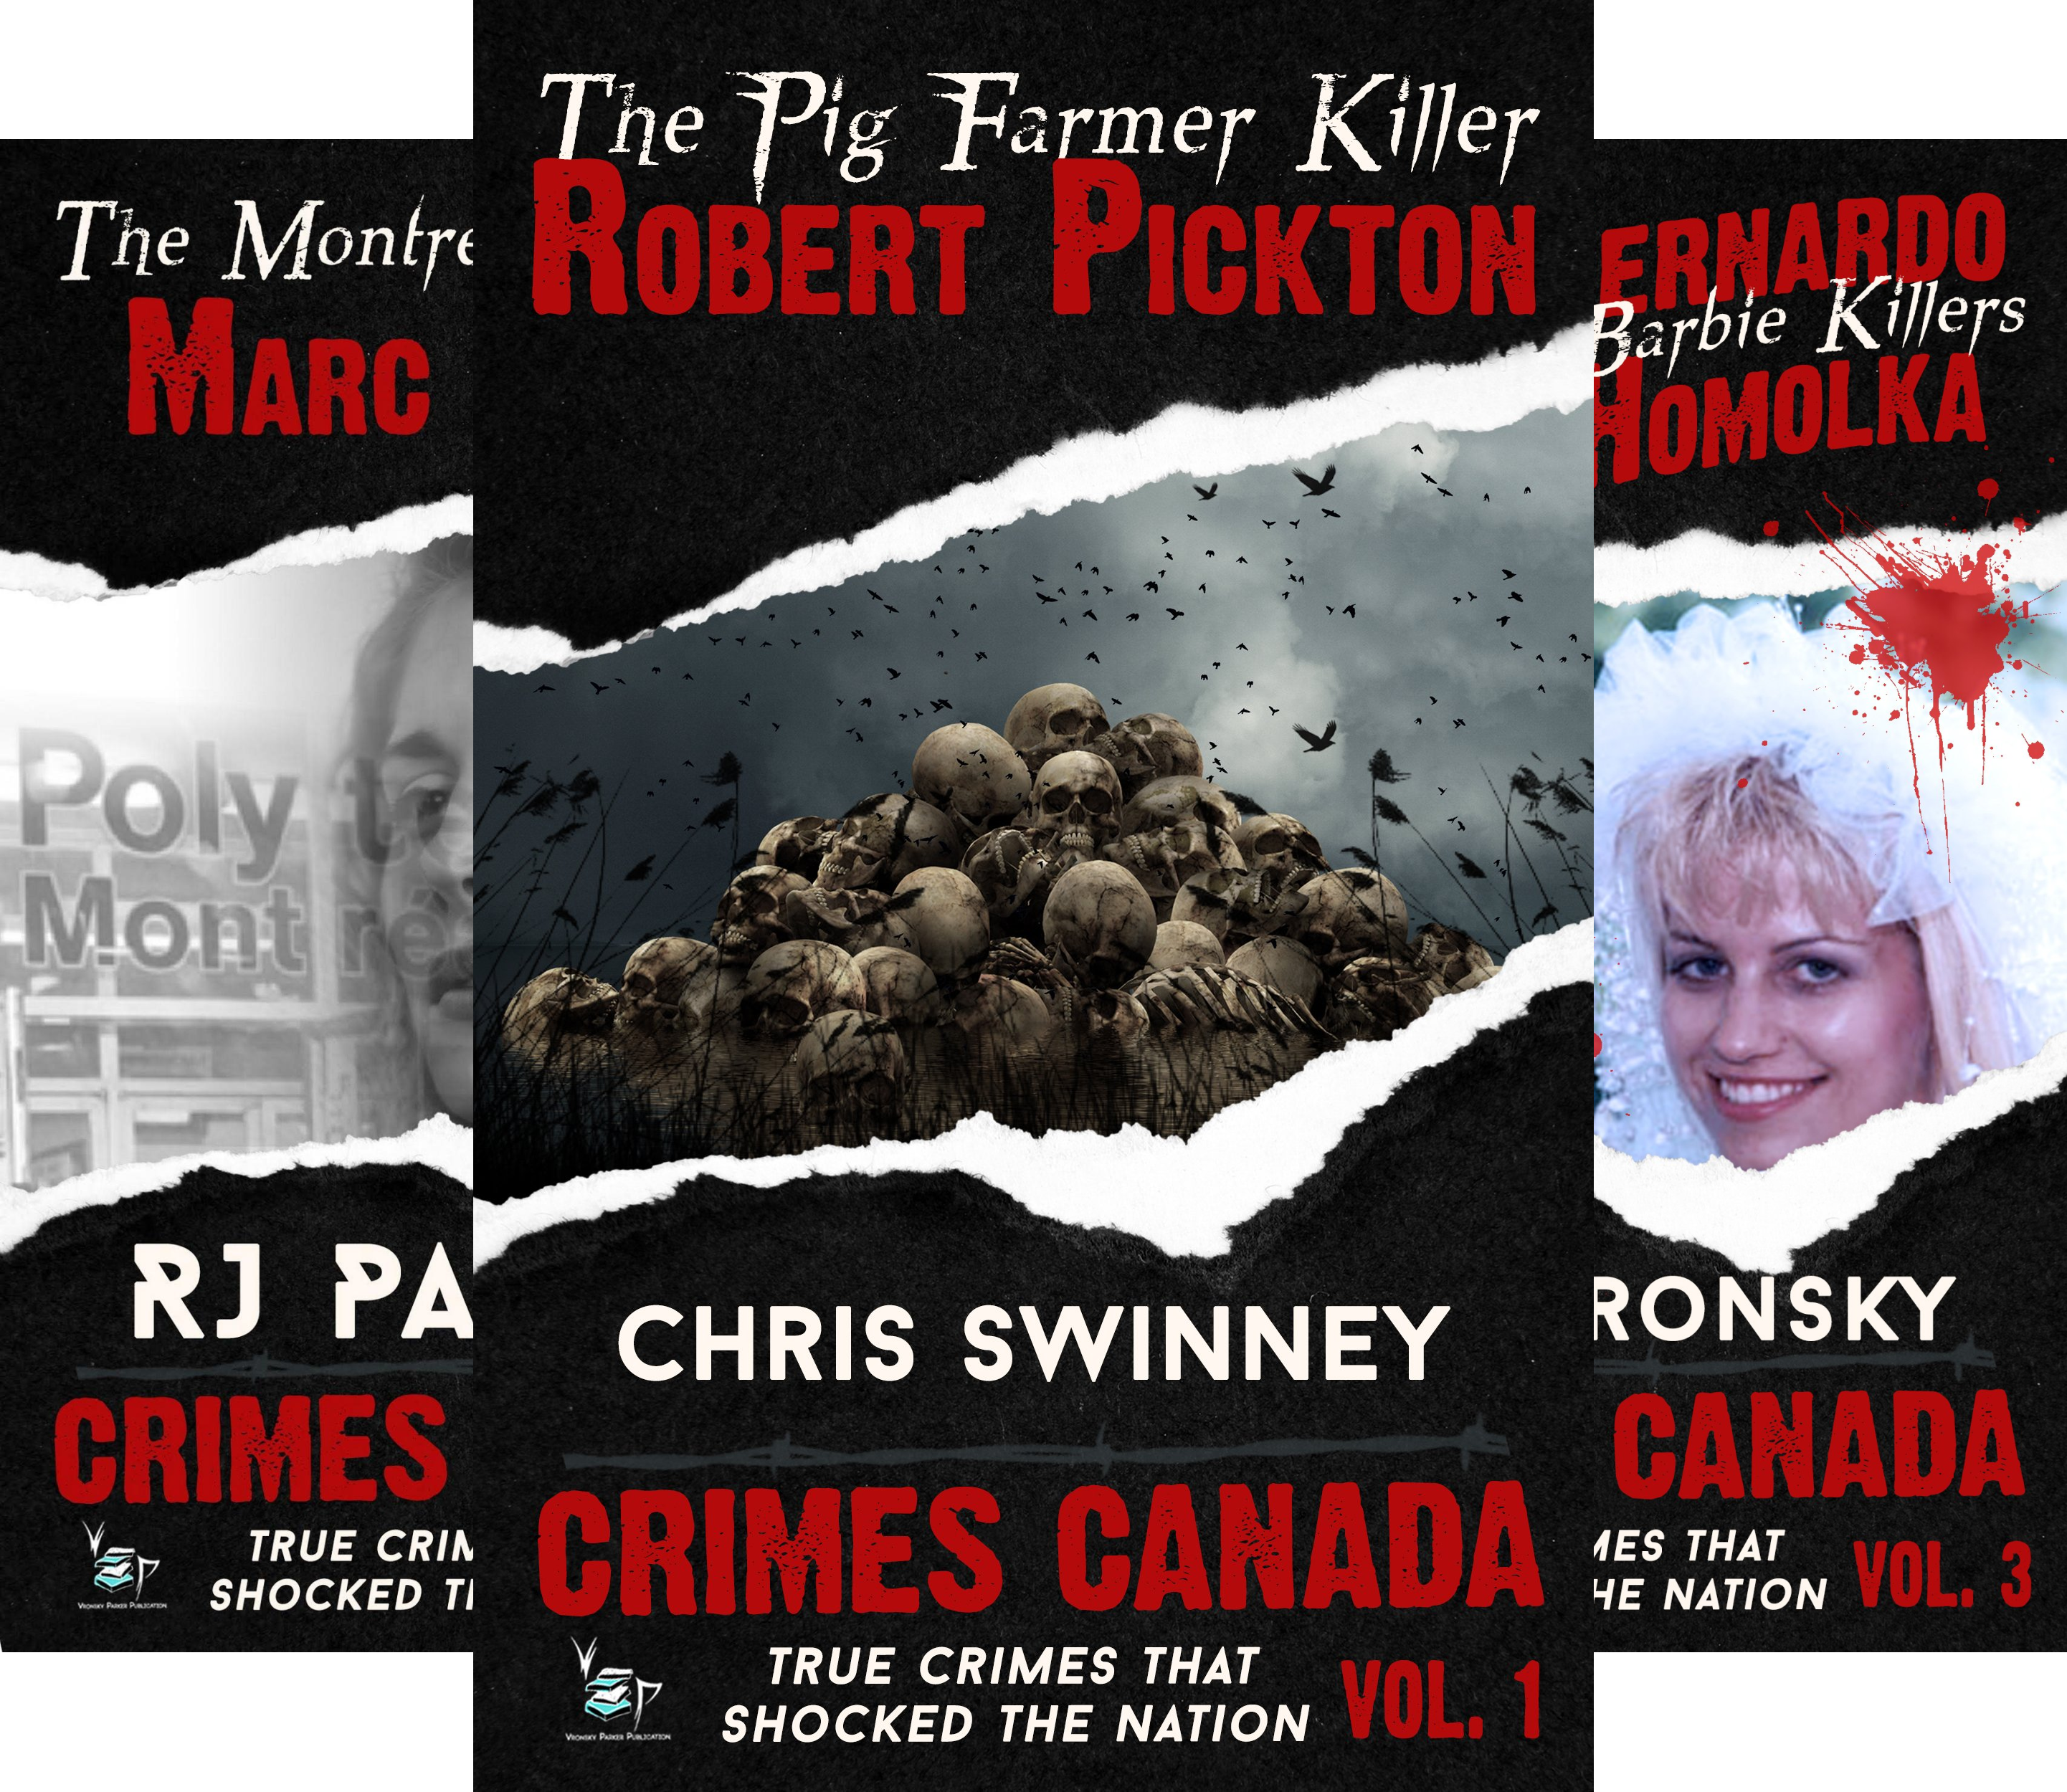 Crimes Canada: True Crimes That Shocked the Nation (18 Book Series)